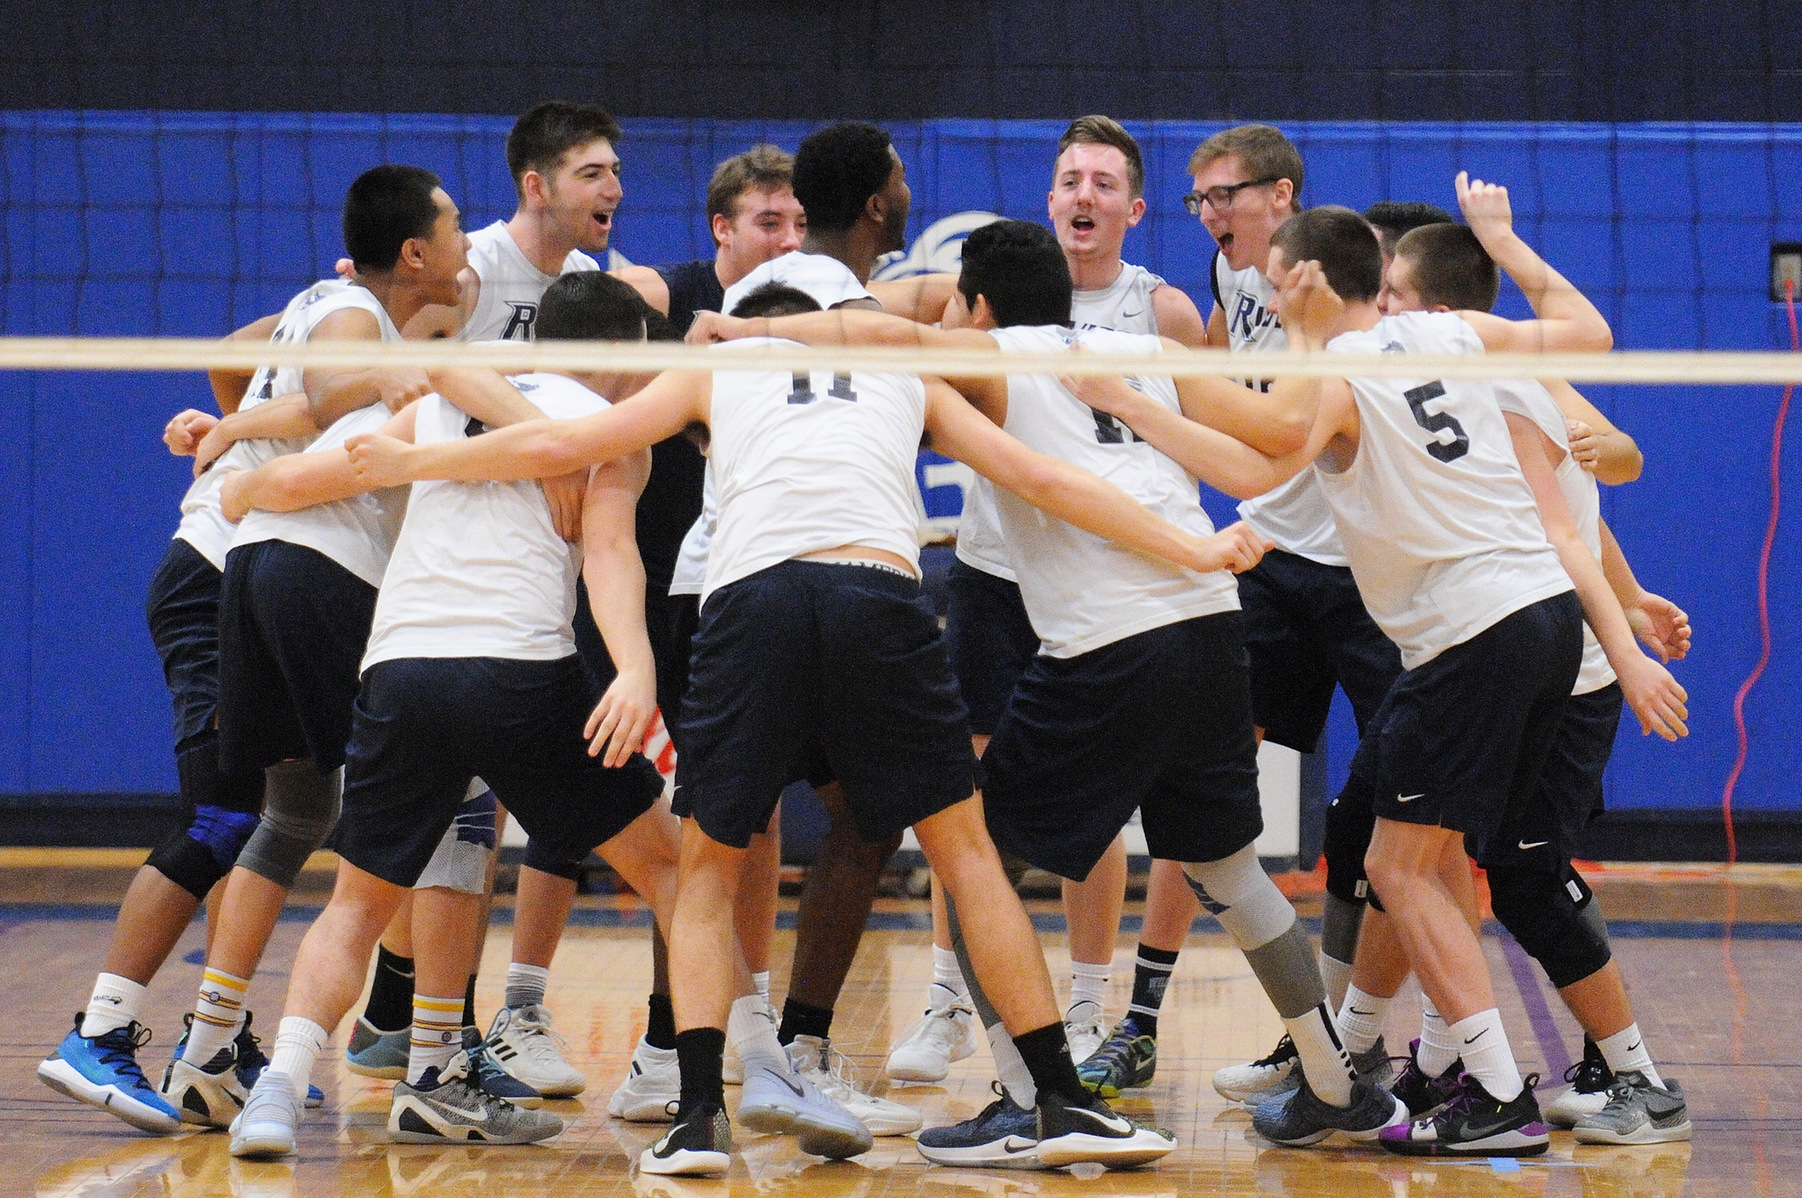 Men's Volleyball: Raiders sweep the Saints, 3-0.